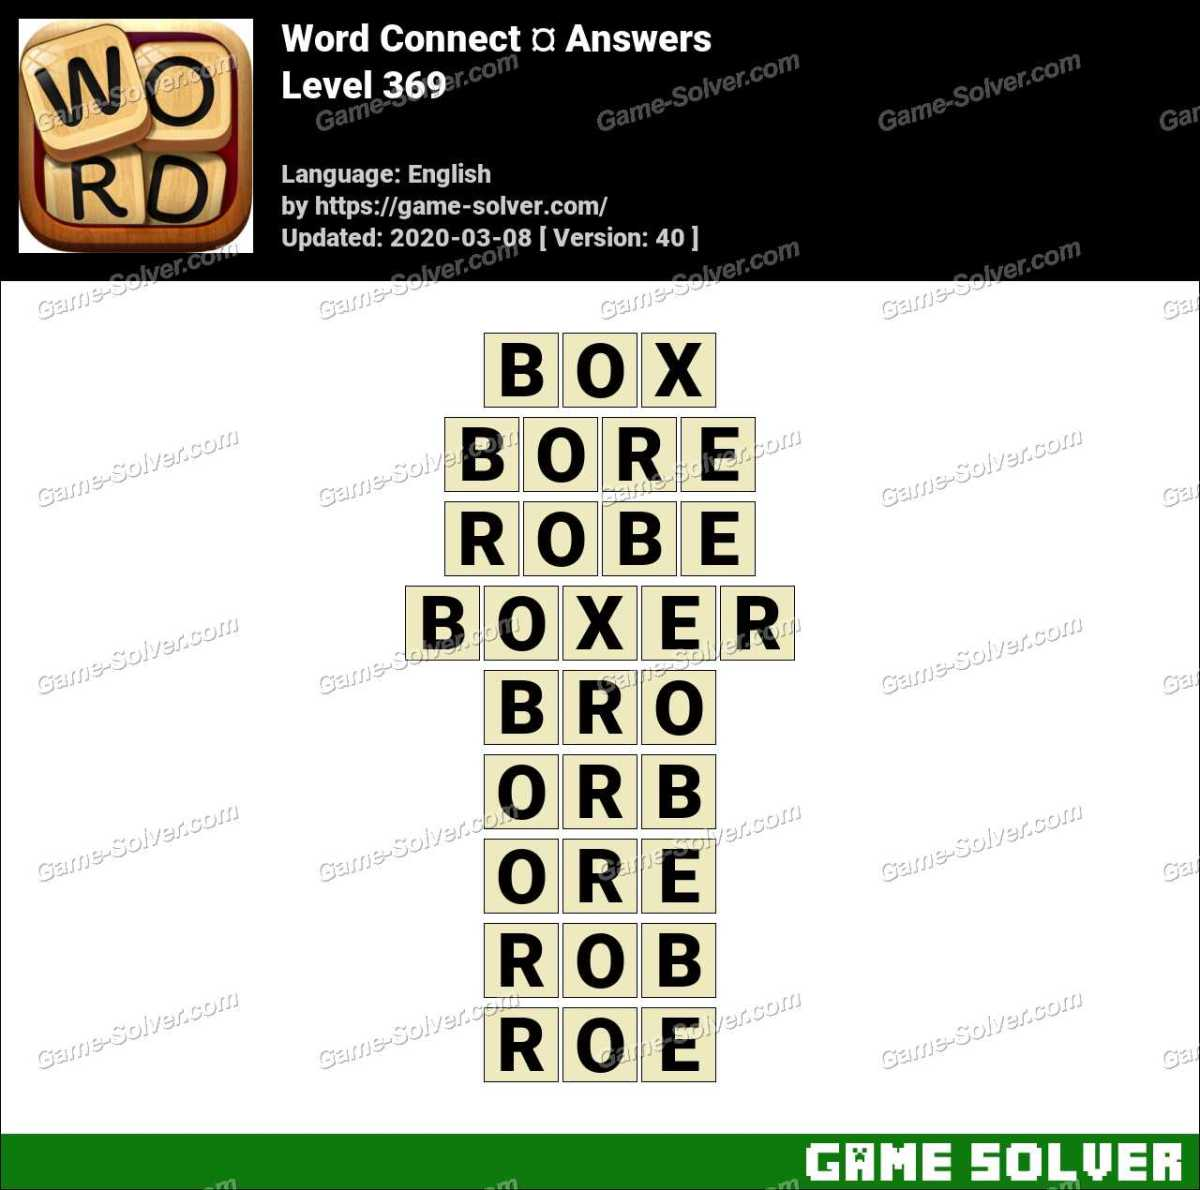 Word Connect Level 369 Answers